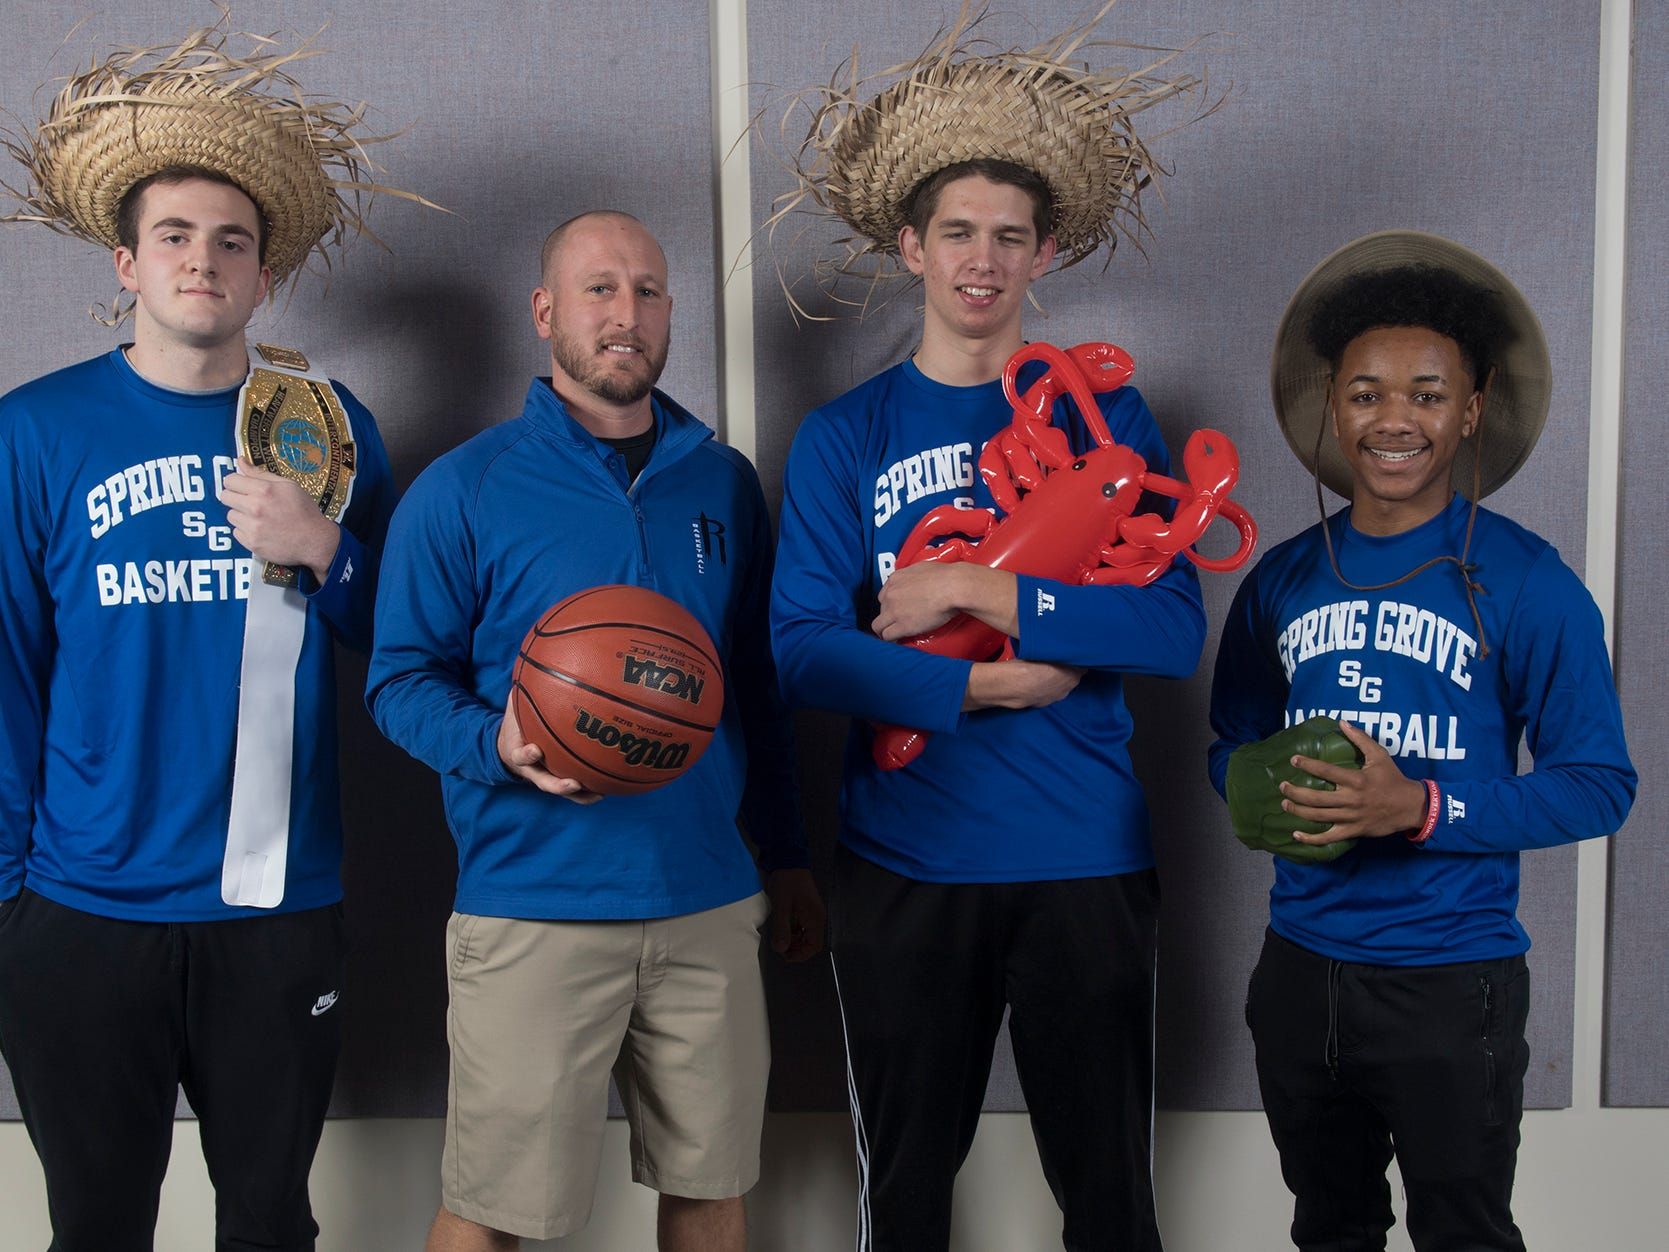 From the left, Jordan Bellamy, Ryan Eisenhart, Elijah Taylor, and Madison Moore, of the Spring Grove High School basketball team, during the 2018-19 GameTimePa YAIAA Winter Media Day Sunday November 11, 2018.